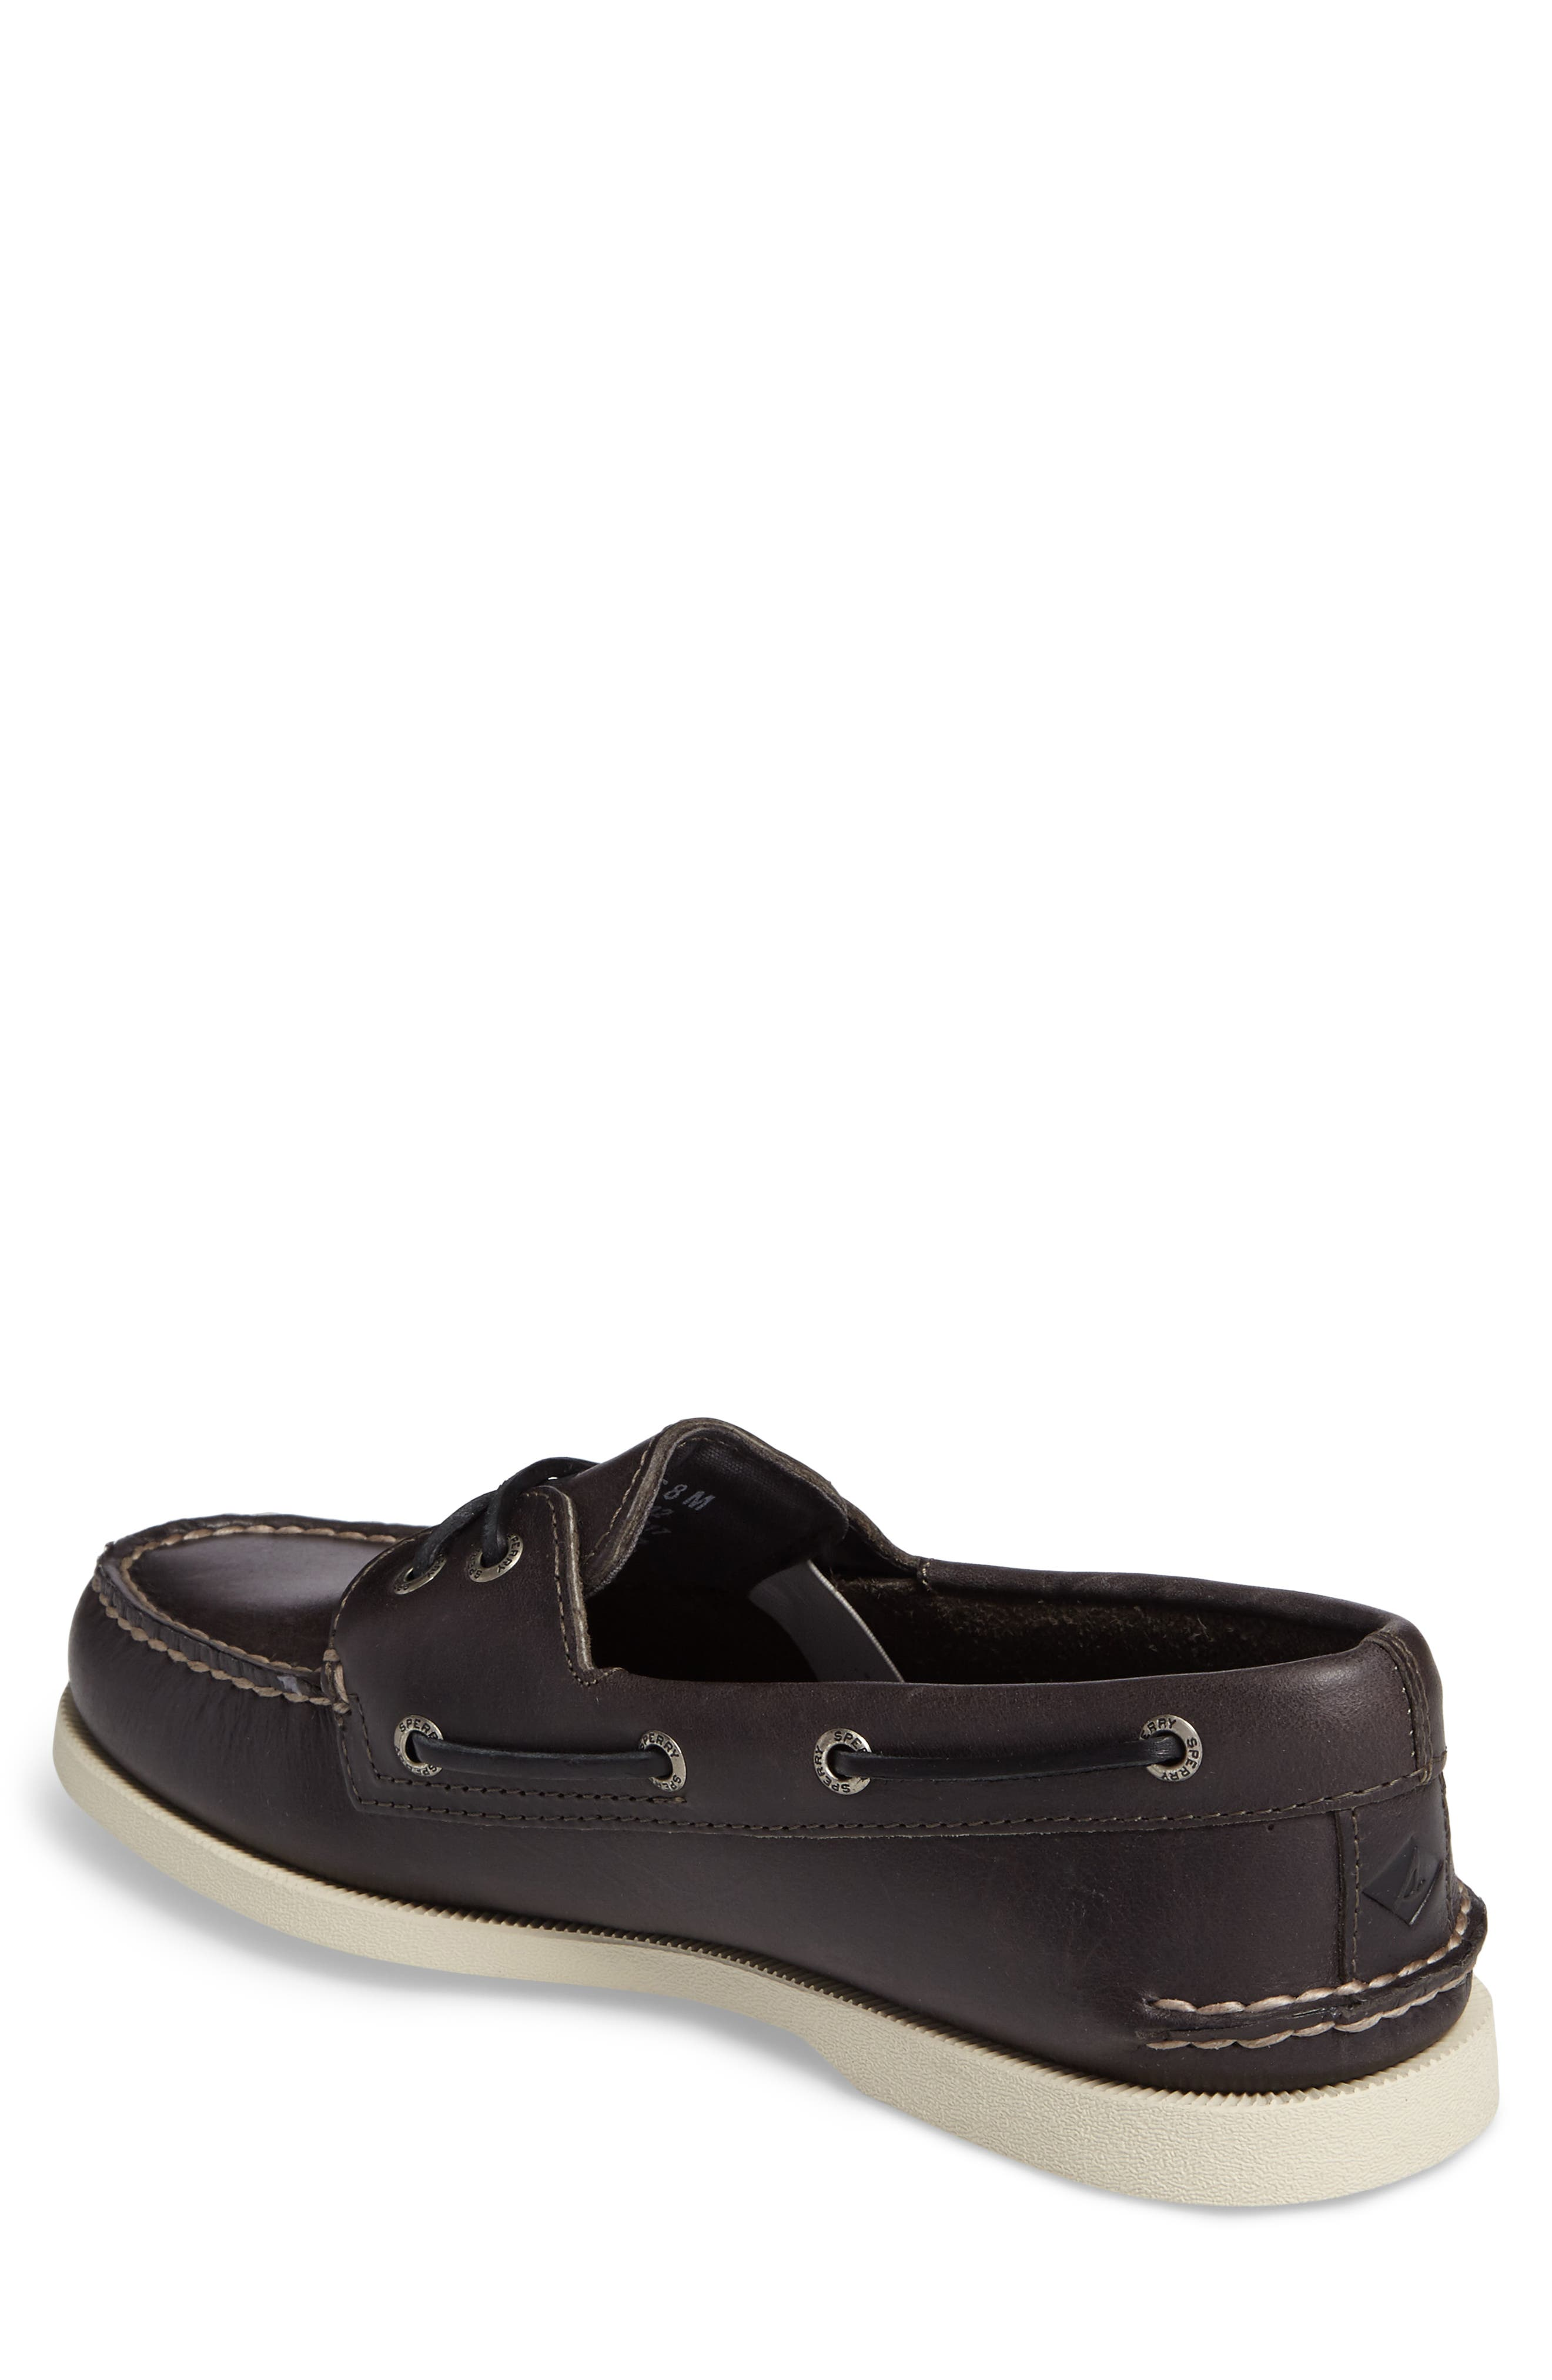 Authentic Original Boat Shoe,                             Alternate thumbnail 2, color,                             021